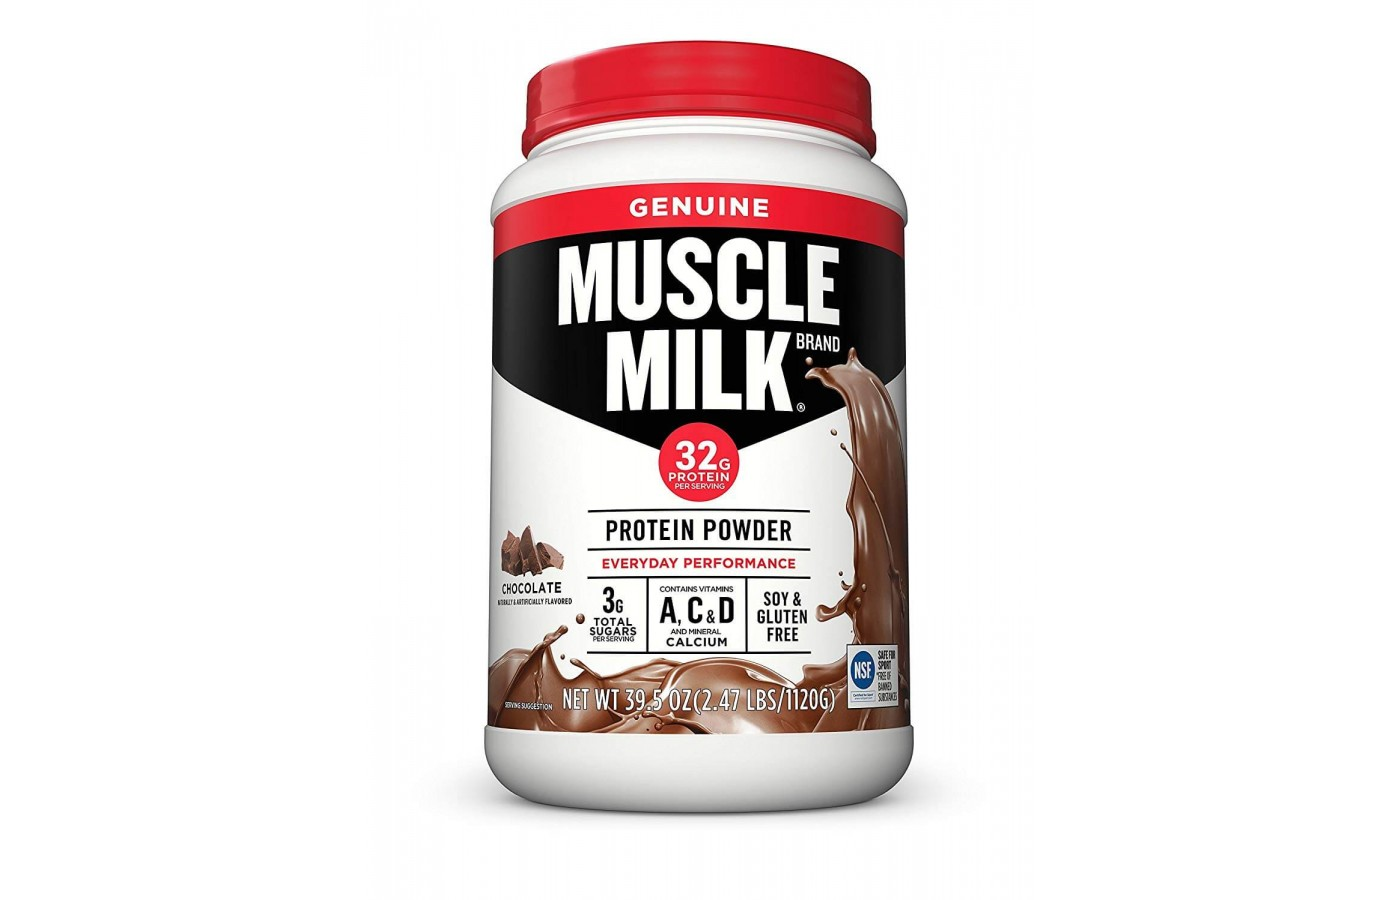 Muscle Milk Protein Powder Reviewed in 2020 | Fighting Report